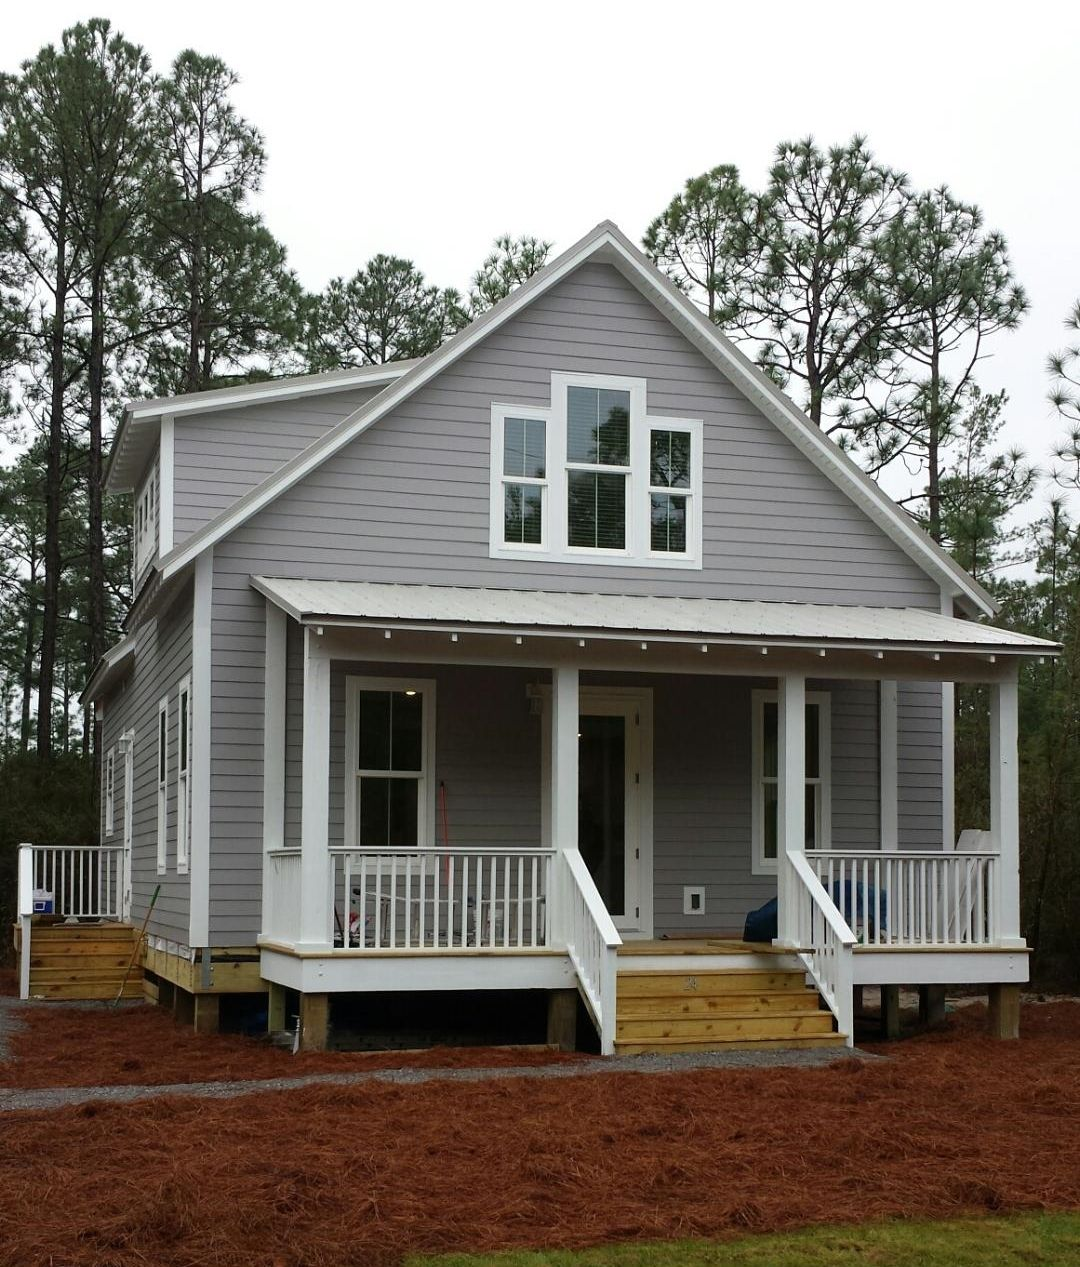 Greenbriar modular home santa rosa beach florida custom for Home built house